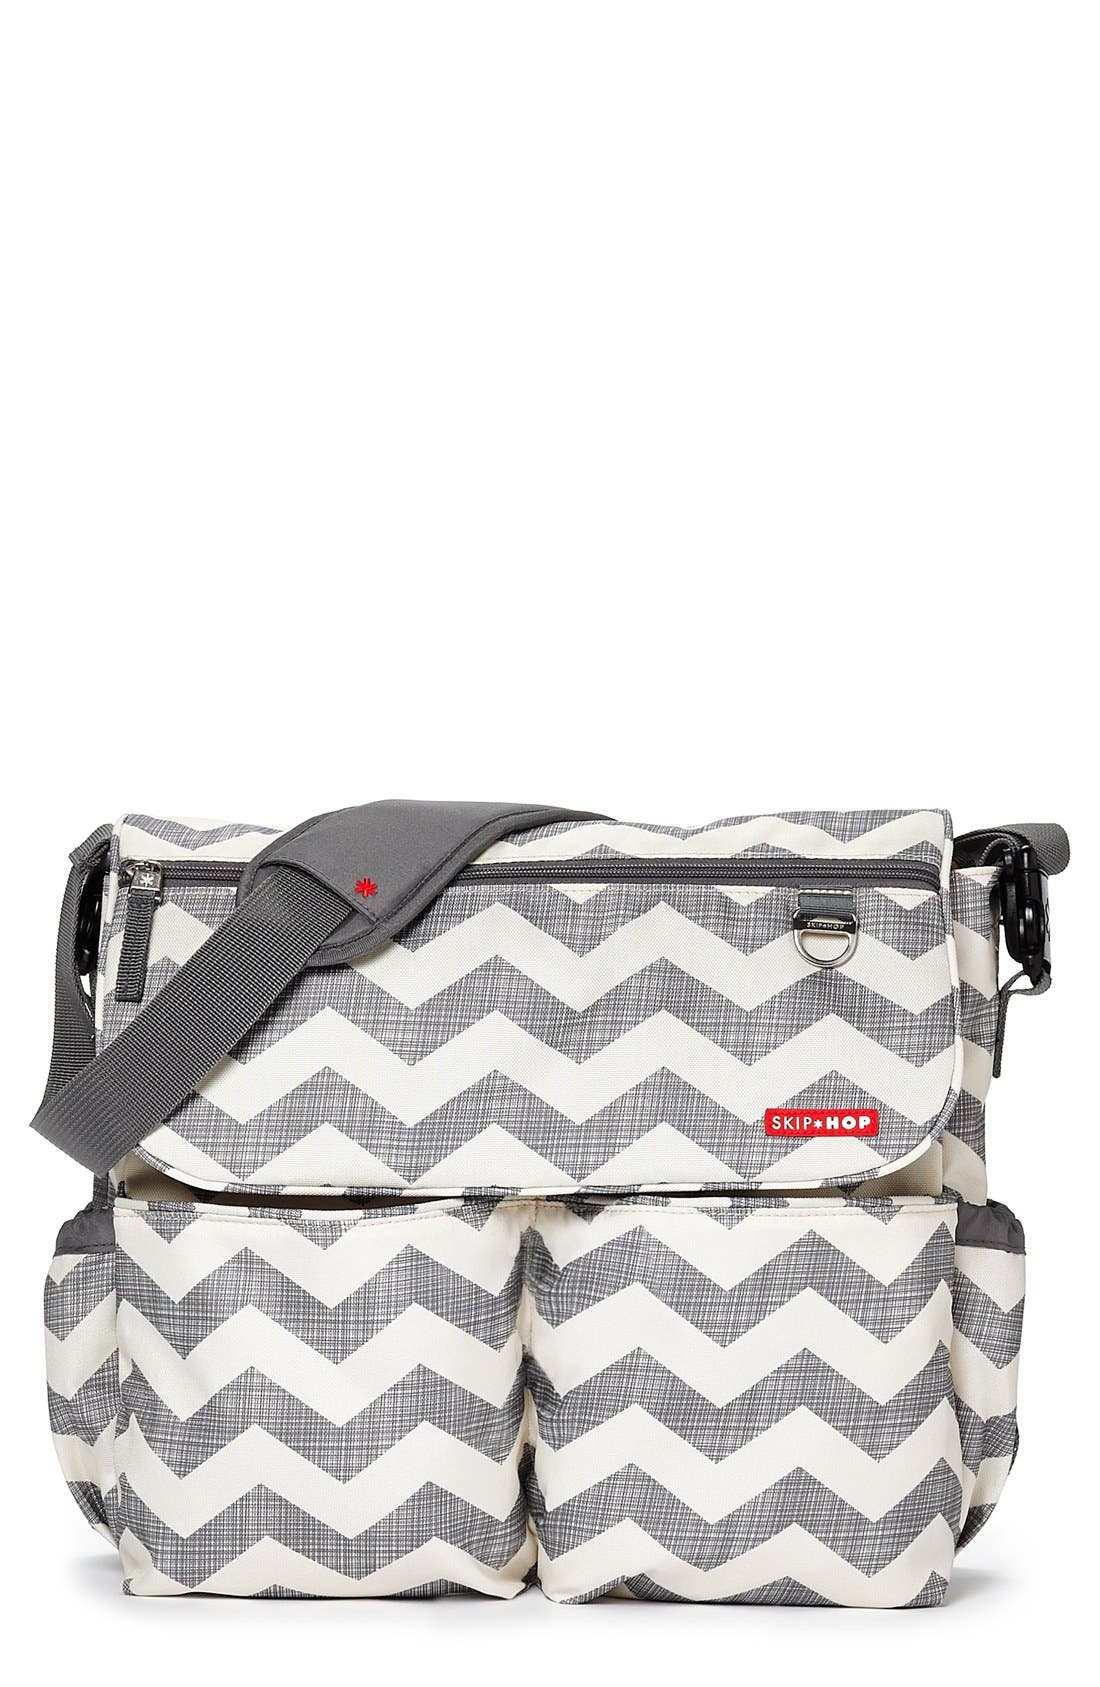 'Dash Signature' Messenger Diaper Bag,                             Main thumbnail 1, color,                             020